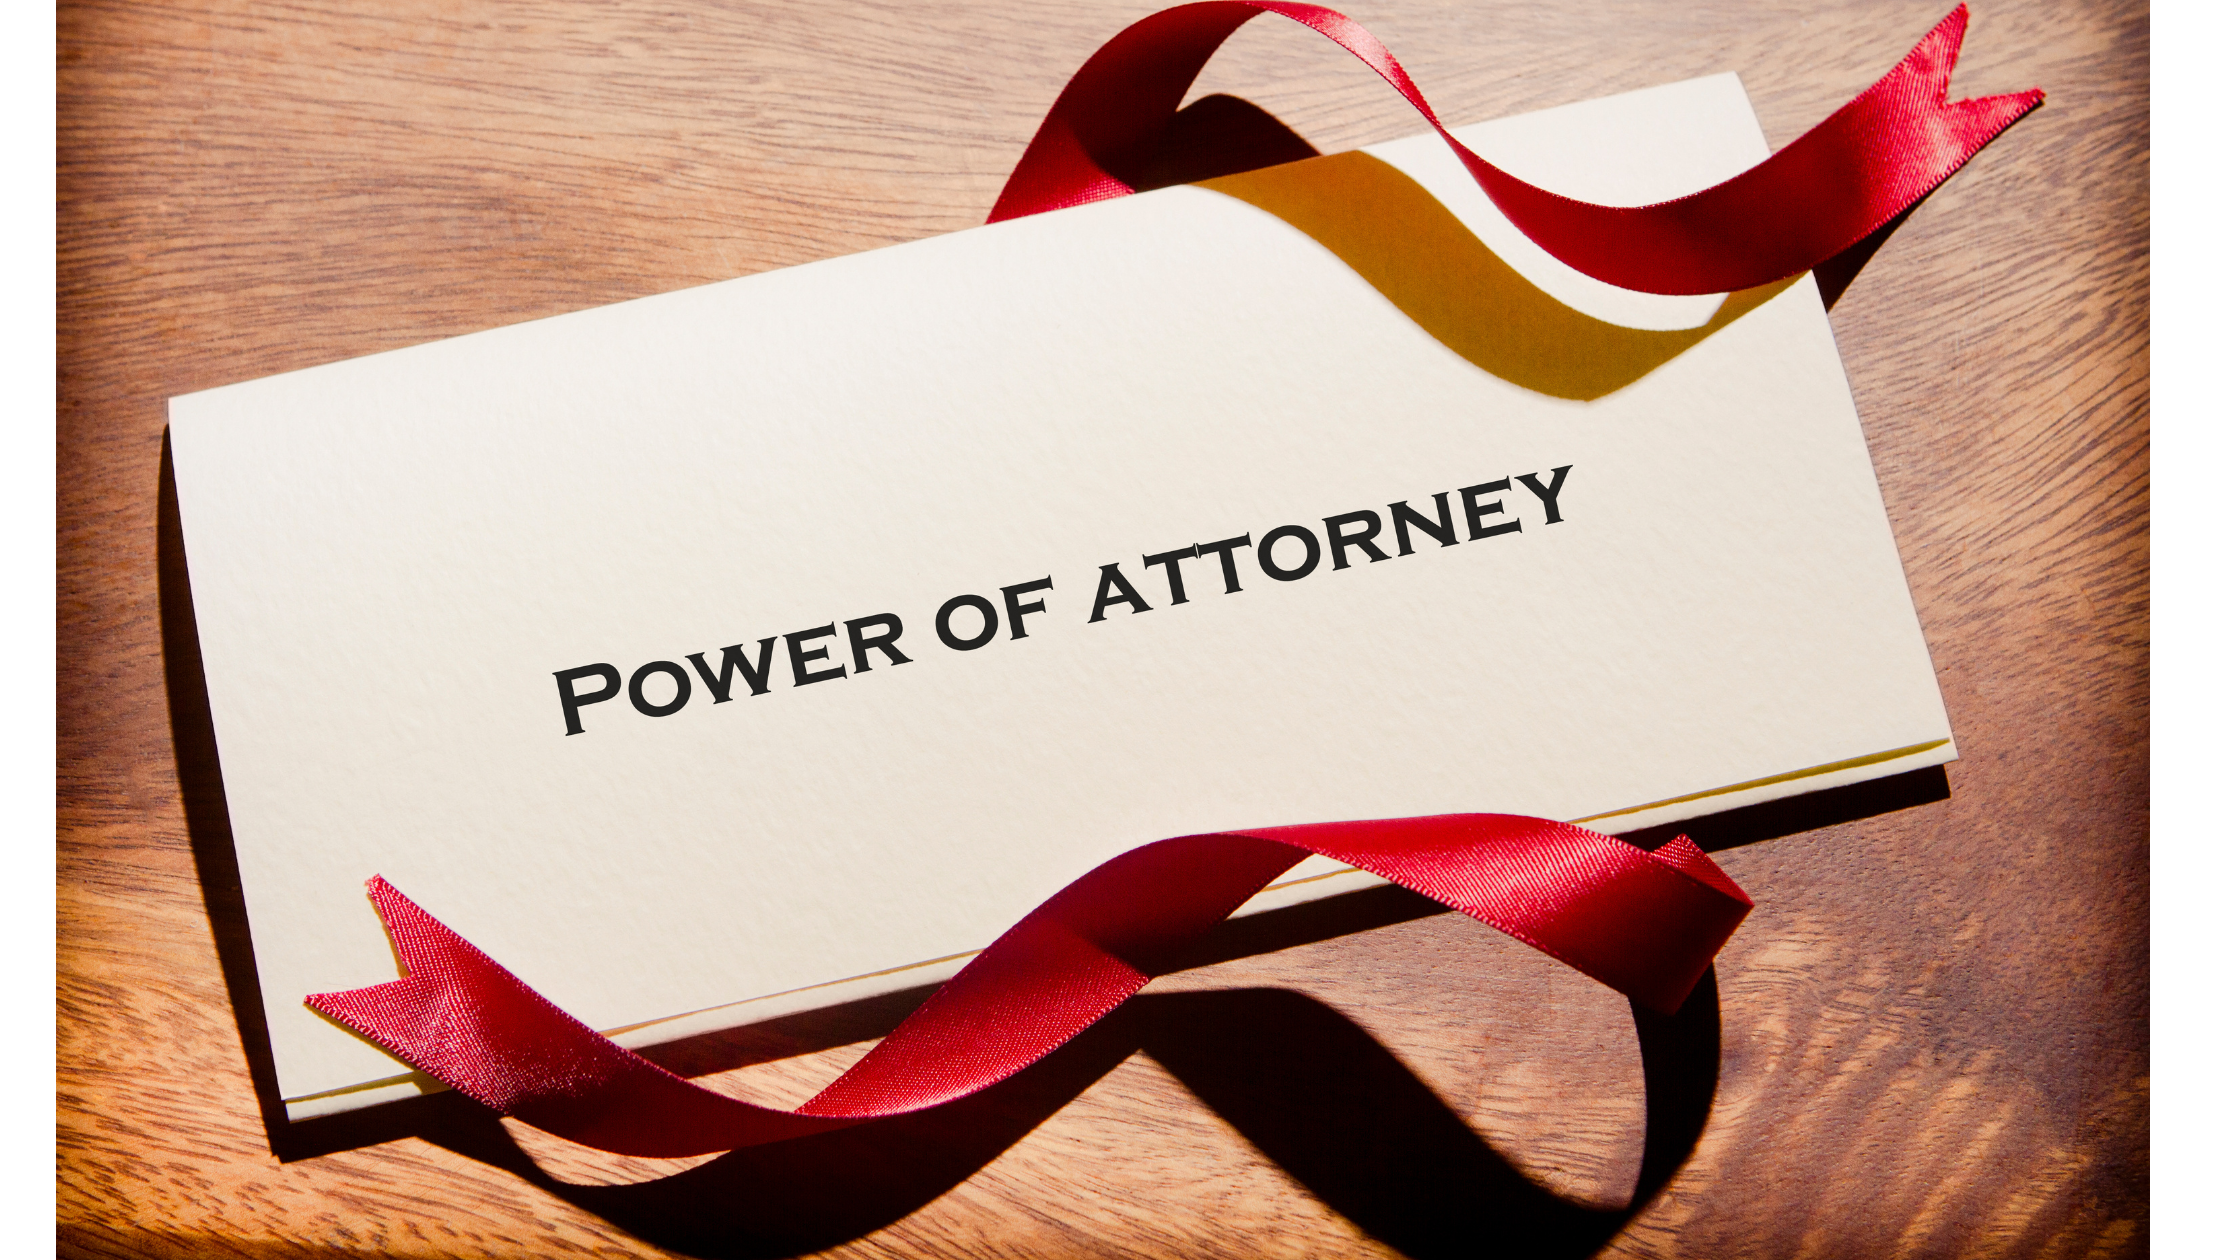 Fiduciary Duty Under a Power of Attorney